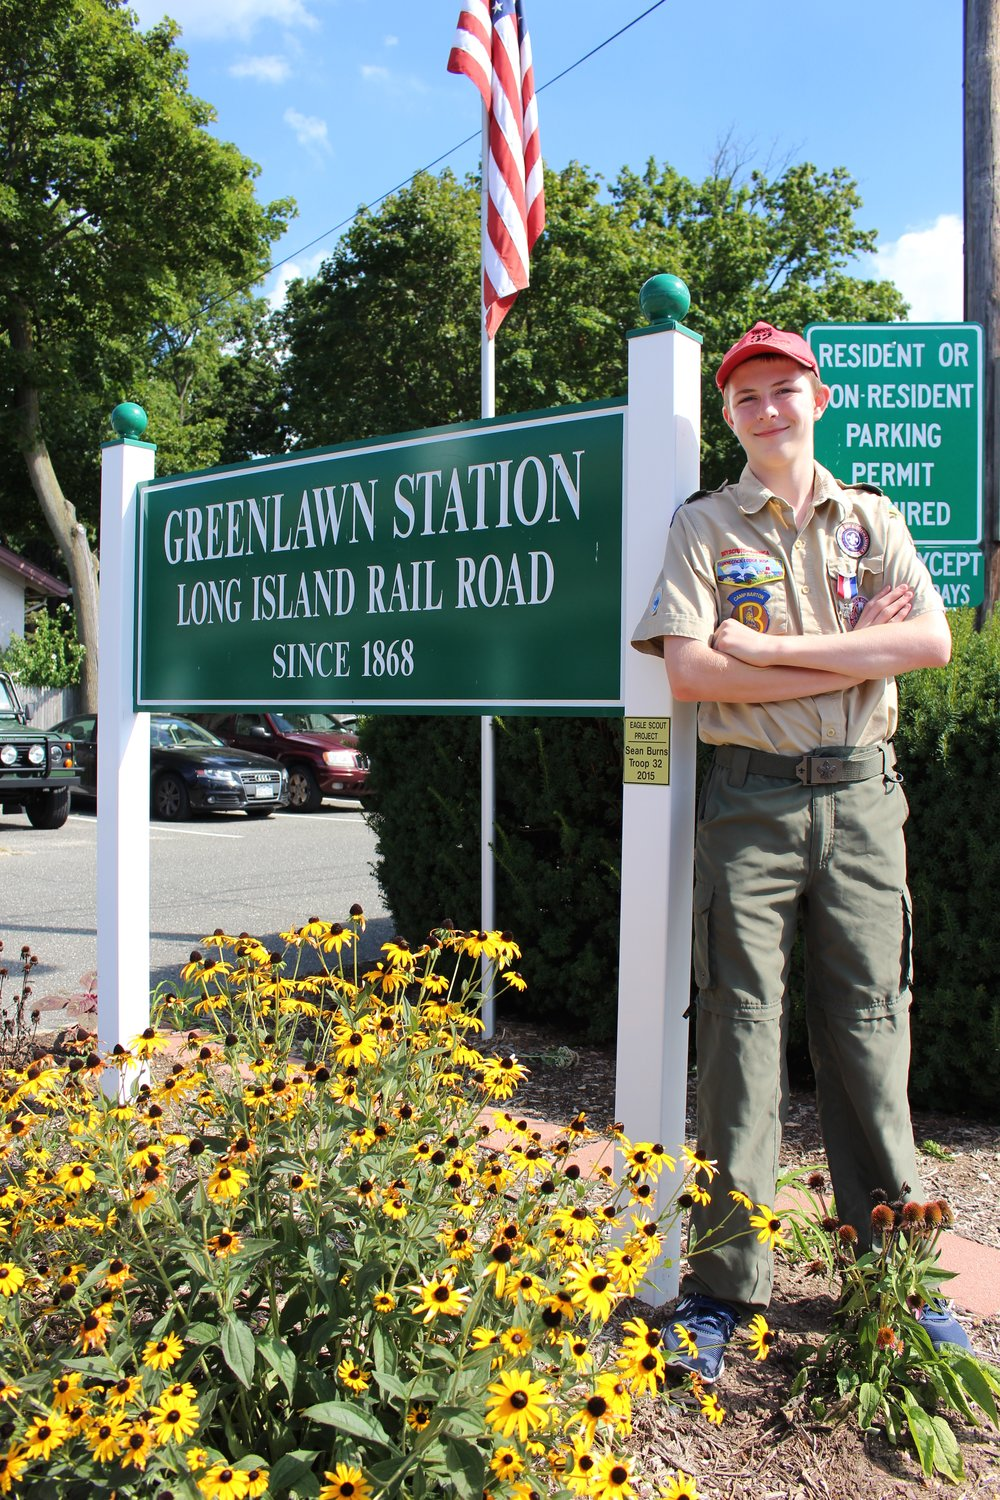 Sean Burns is the third generation of his family to earn the Eagle Scout rank. For his project, the 15-year-old replaced the entrance sign at the Greenlawn Long Island Railroad Station, and spruced up the landscape around it.